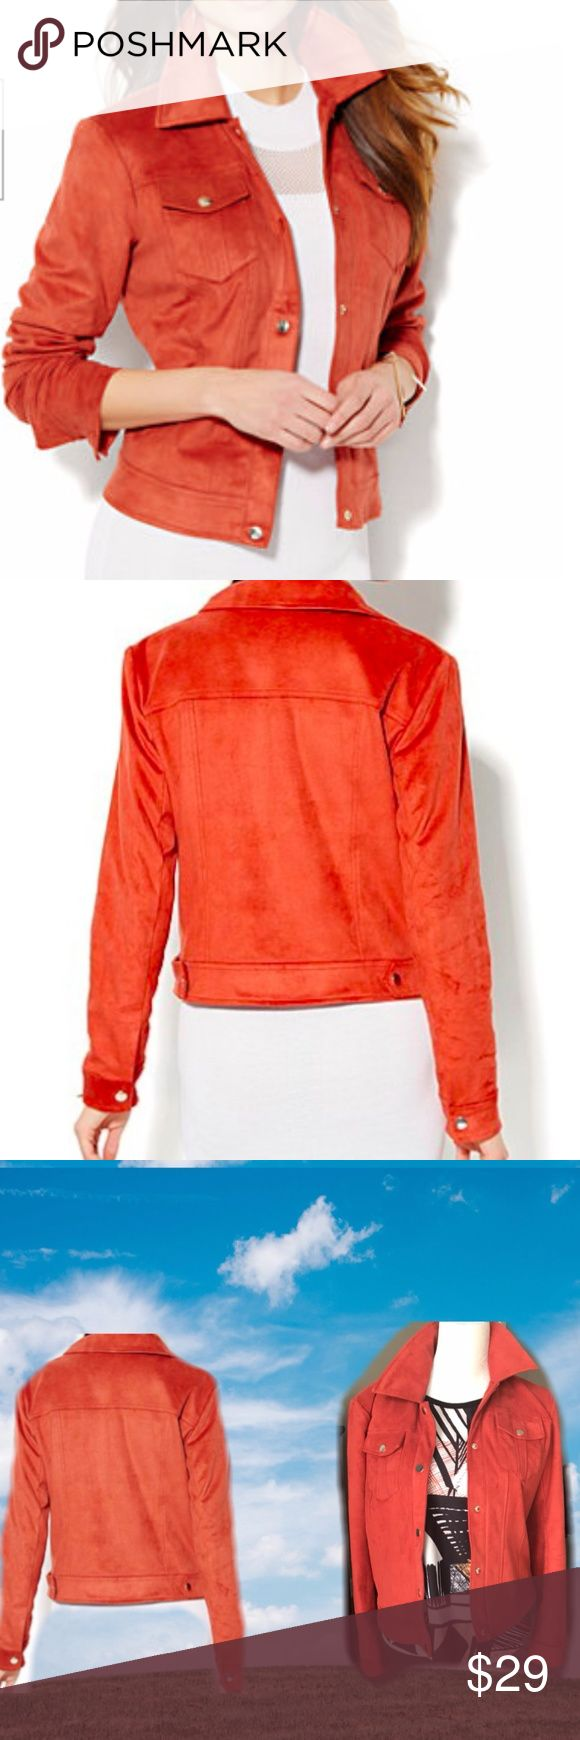 Pumpkin Spice Ultra Suede Jacket NY&Co Pumpkin Spice Ultra Suede Jacket from NY&Co. This bomber style jacket is super soft and lightweight! Perfect statement piece for fall to make any outfit pop! Workweek chic made simple. The color is red-cinnamon, looks like a burnt orange aka pumpkin spice! New York & Company Jackets & Coats Blazers